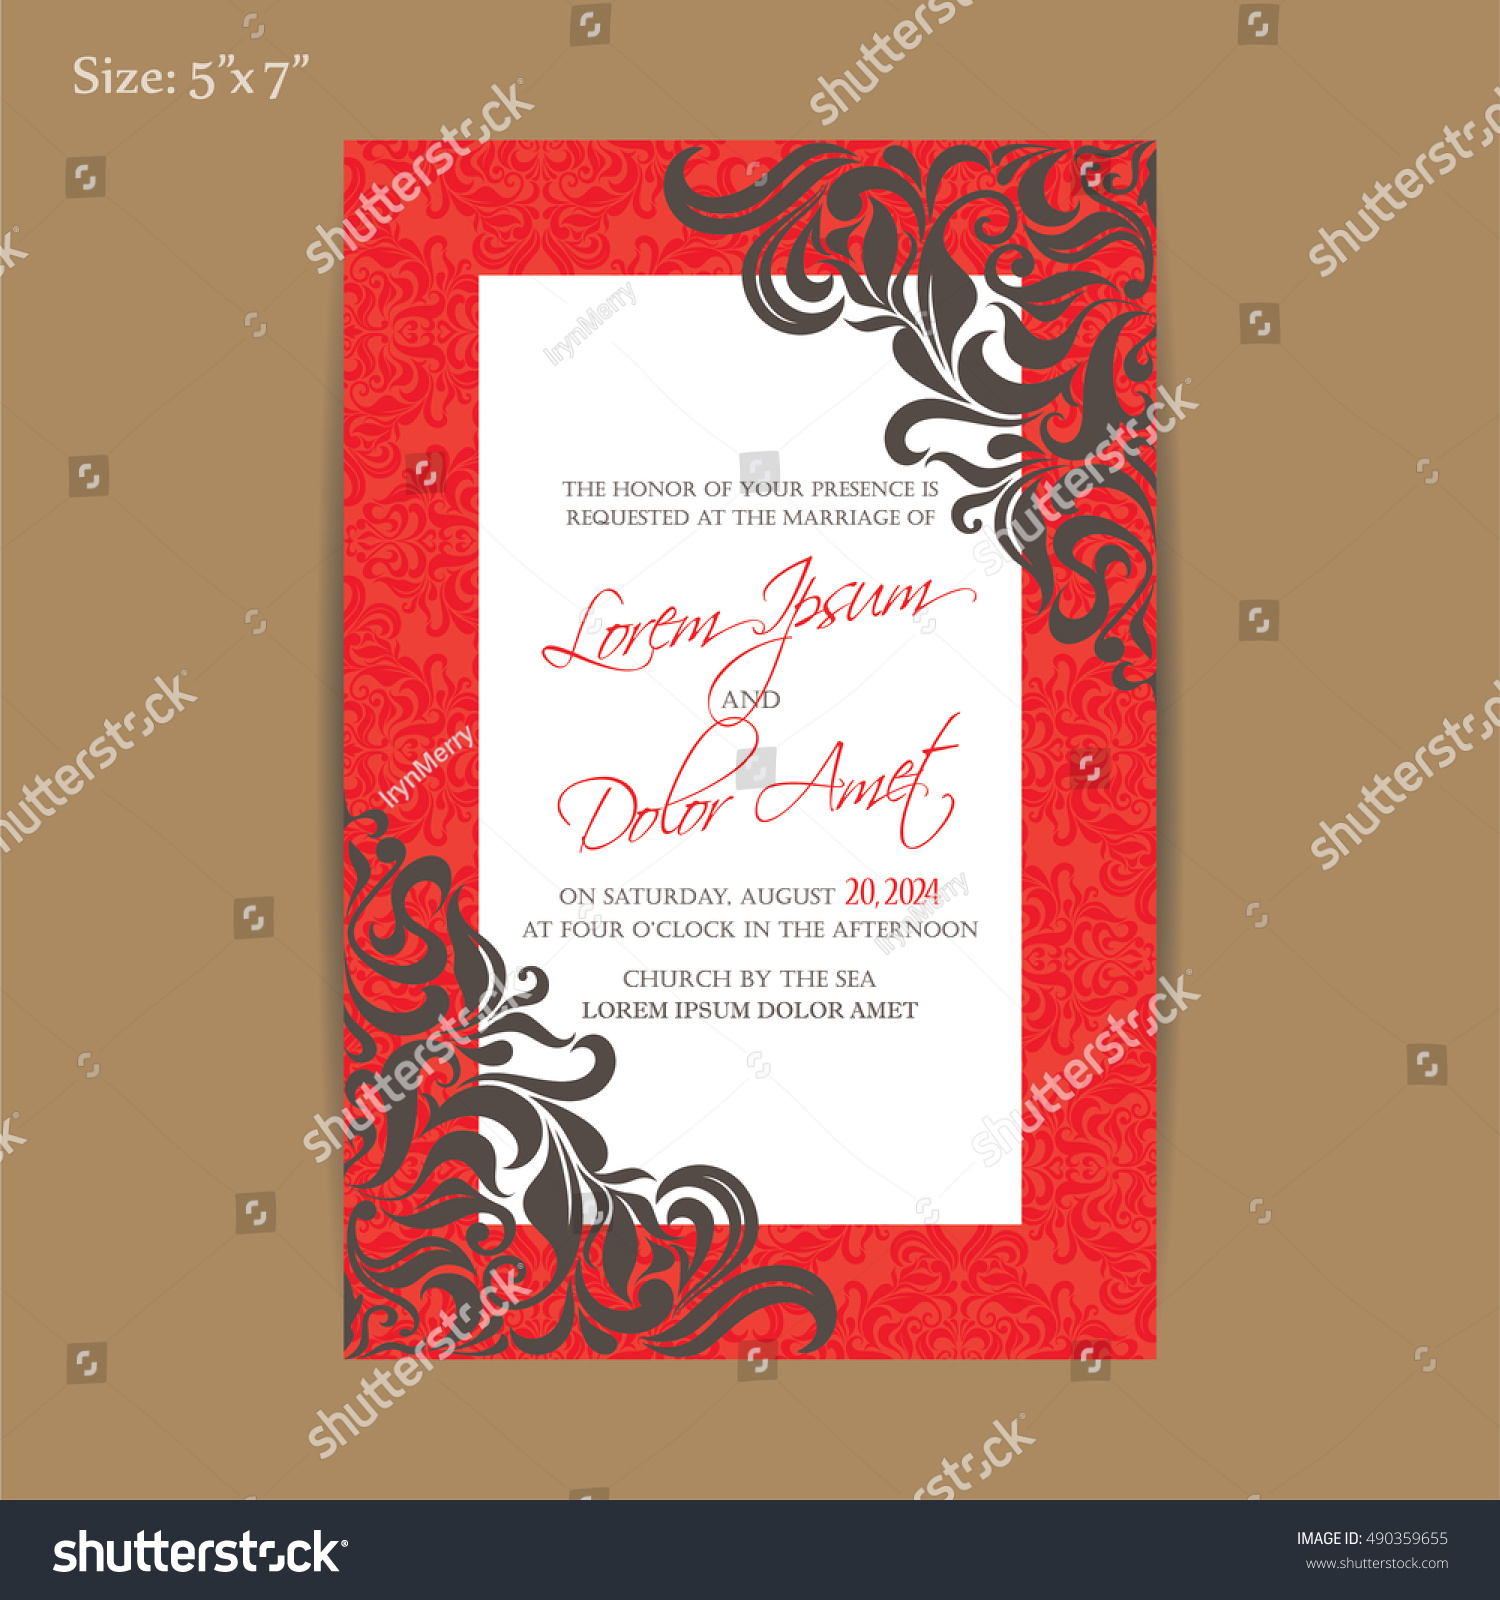 Luxury Red Vintage Wedding Invitation Card Stock Vector 490359655 ...